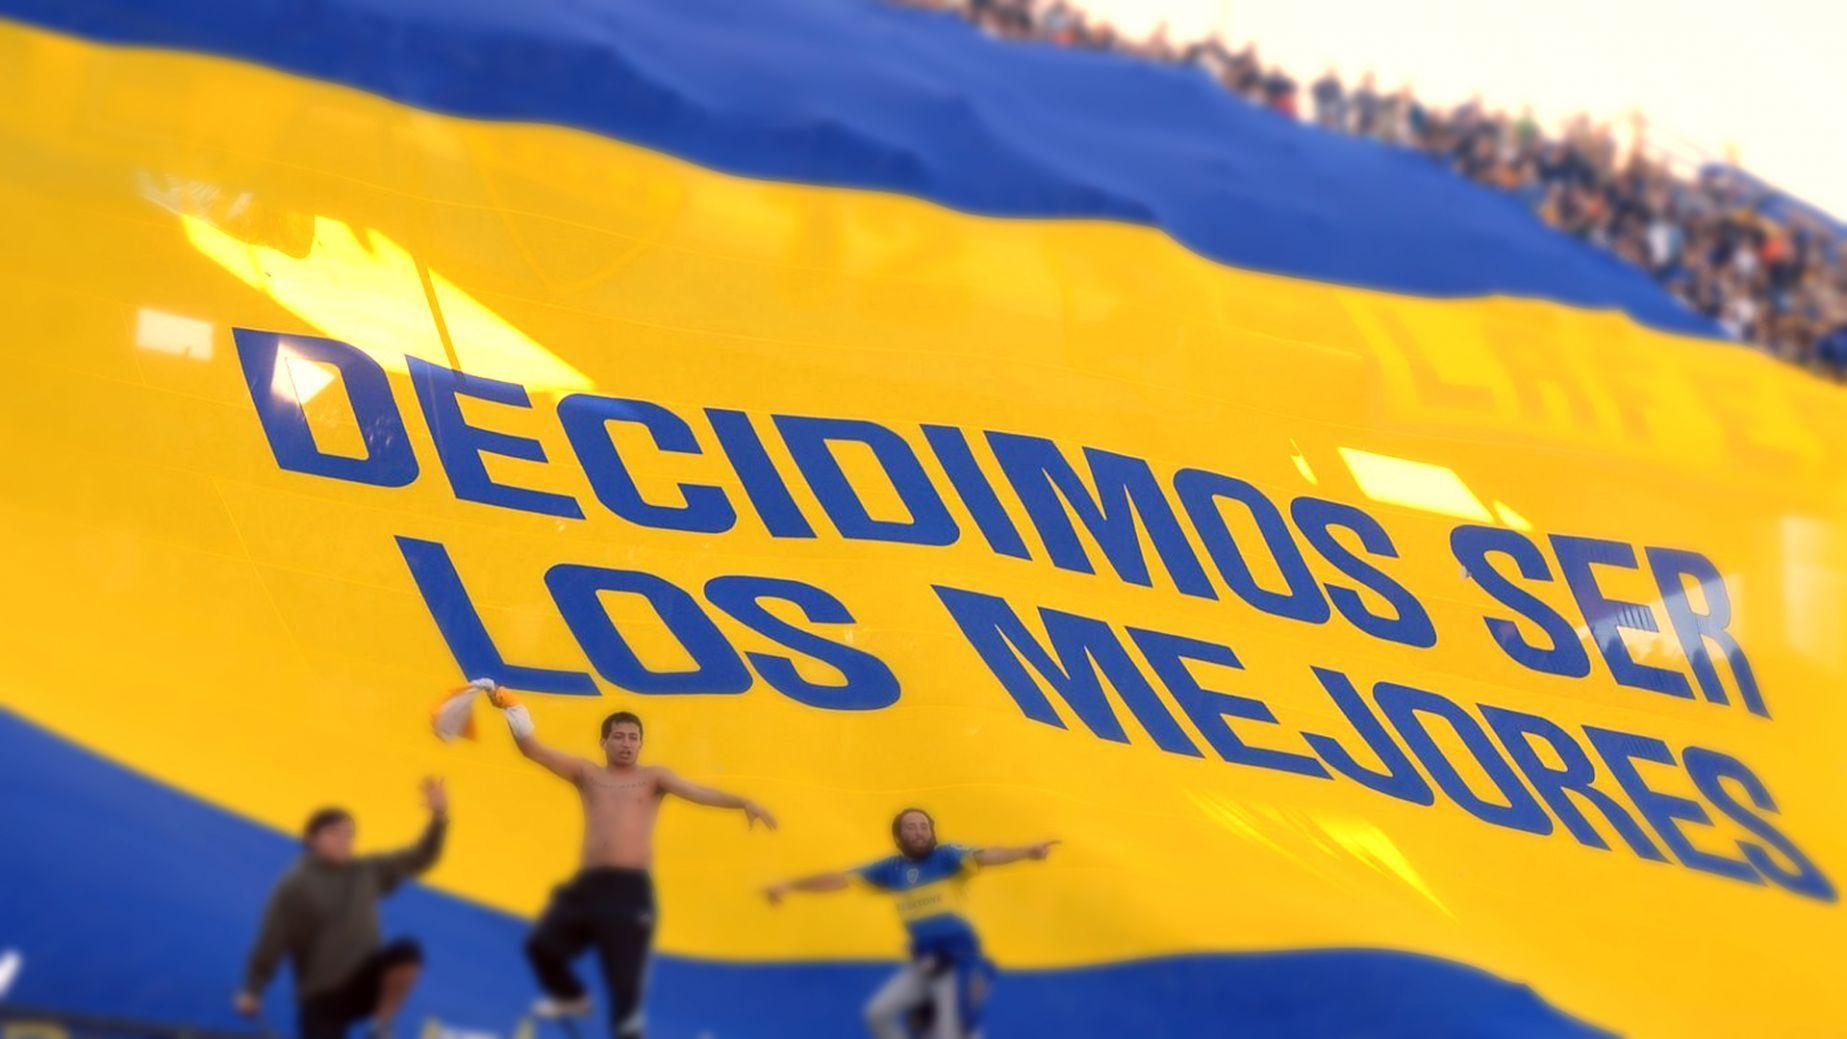 Wallpapers, textos y banners: CA Boca Juniors - Taringa!